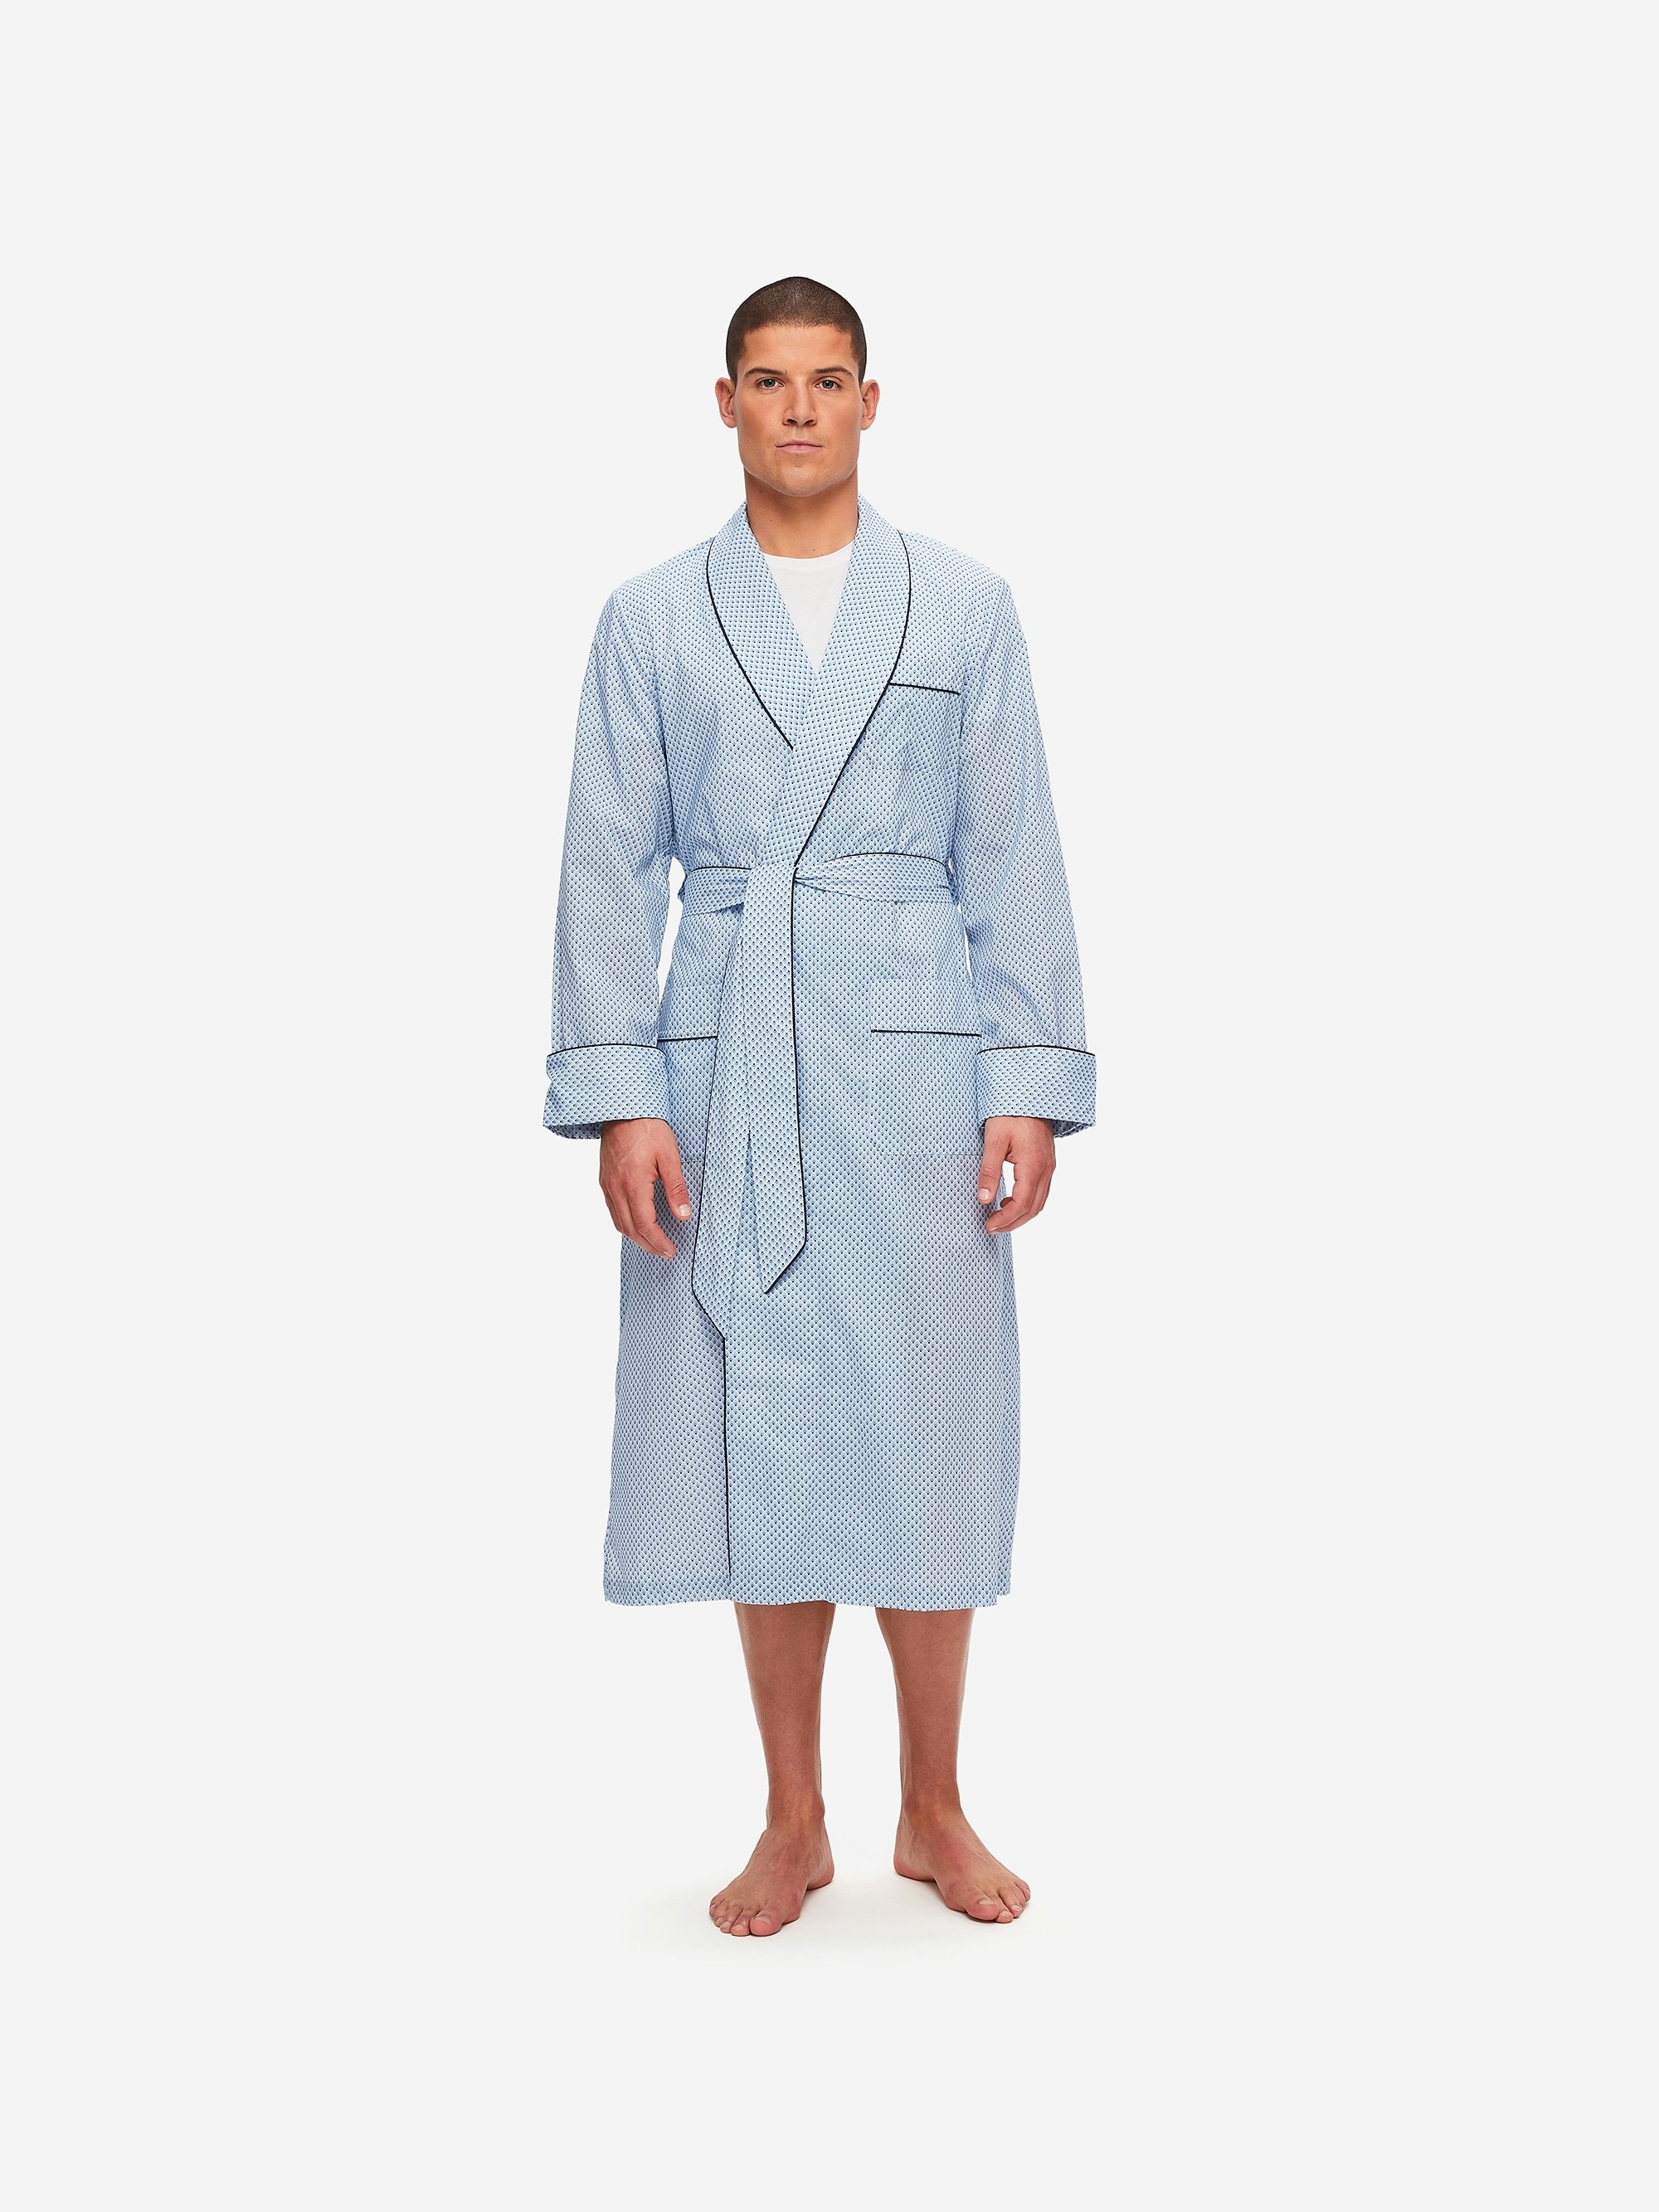 Men's Piped Dressing Gown Ledbury 40 Cotton Batiste Blue